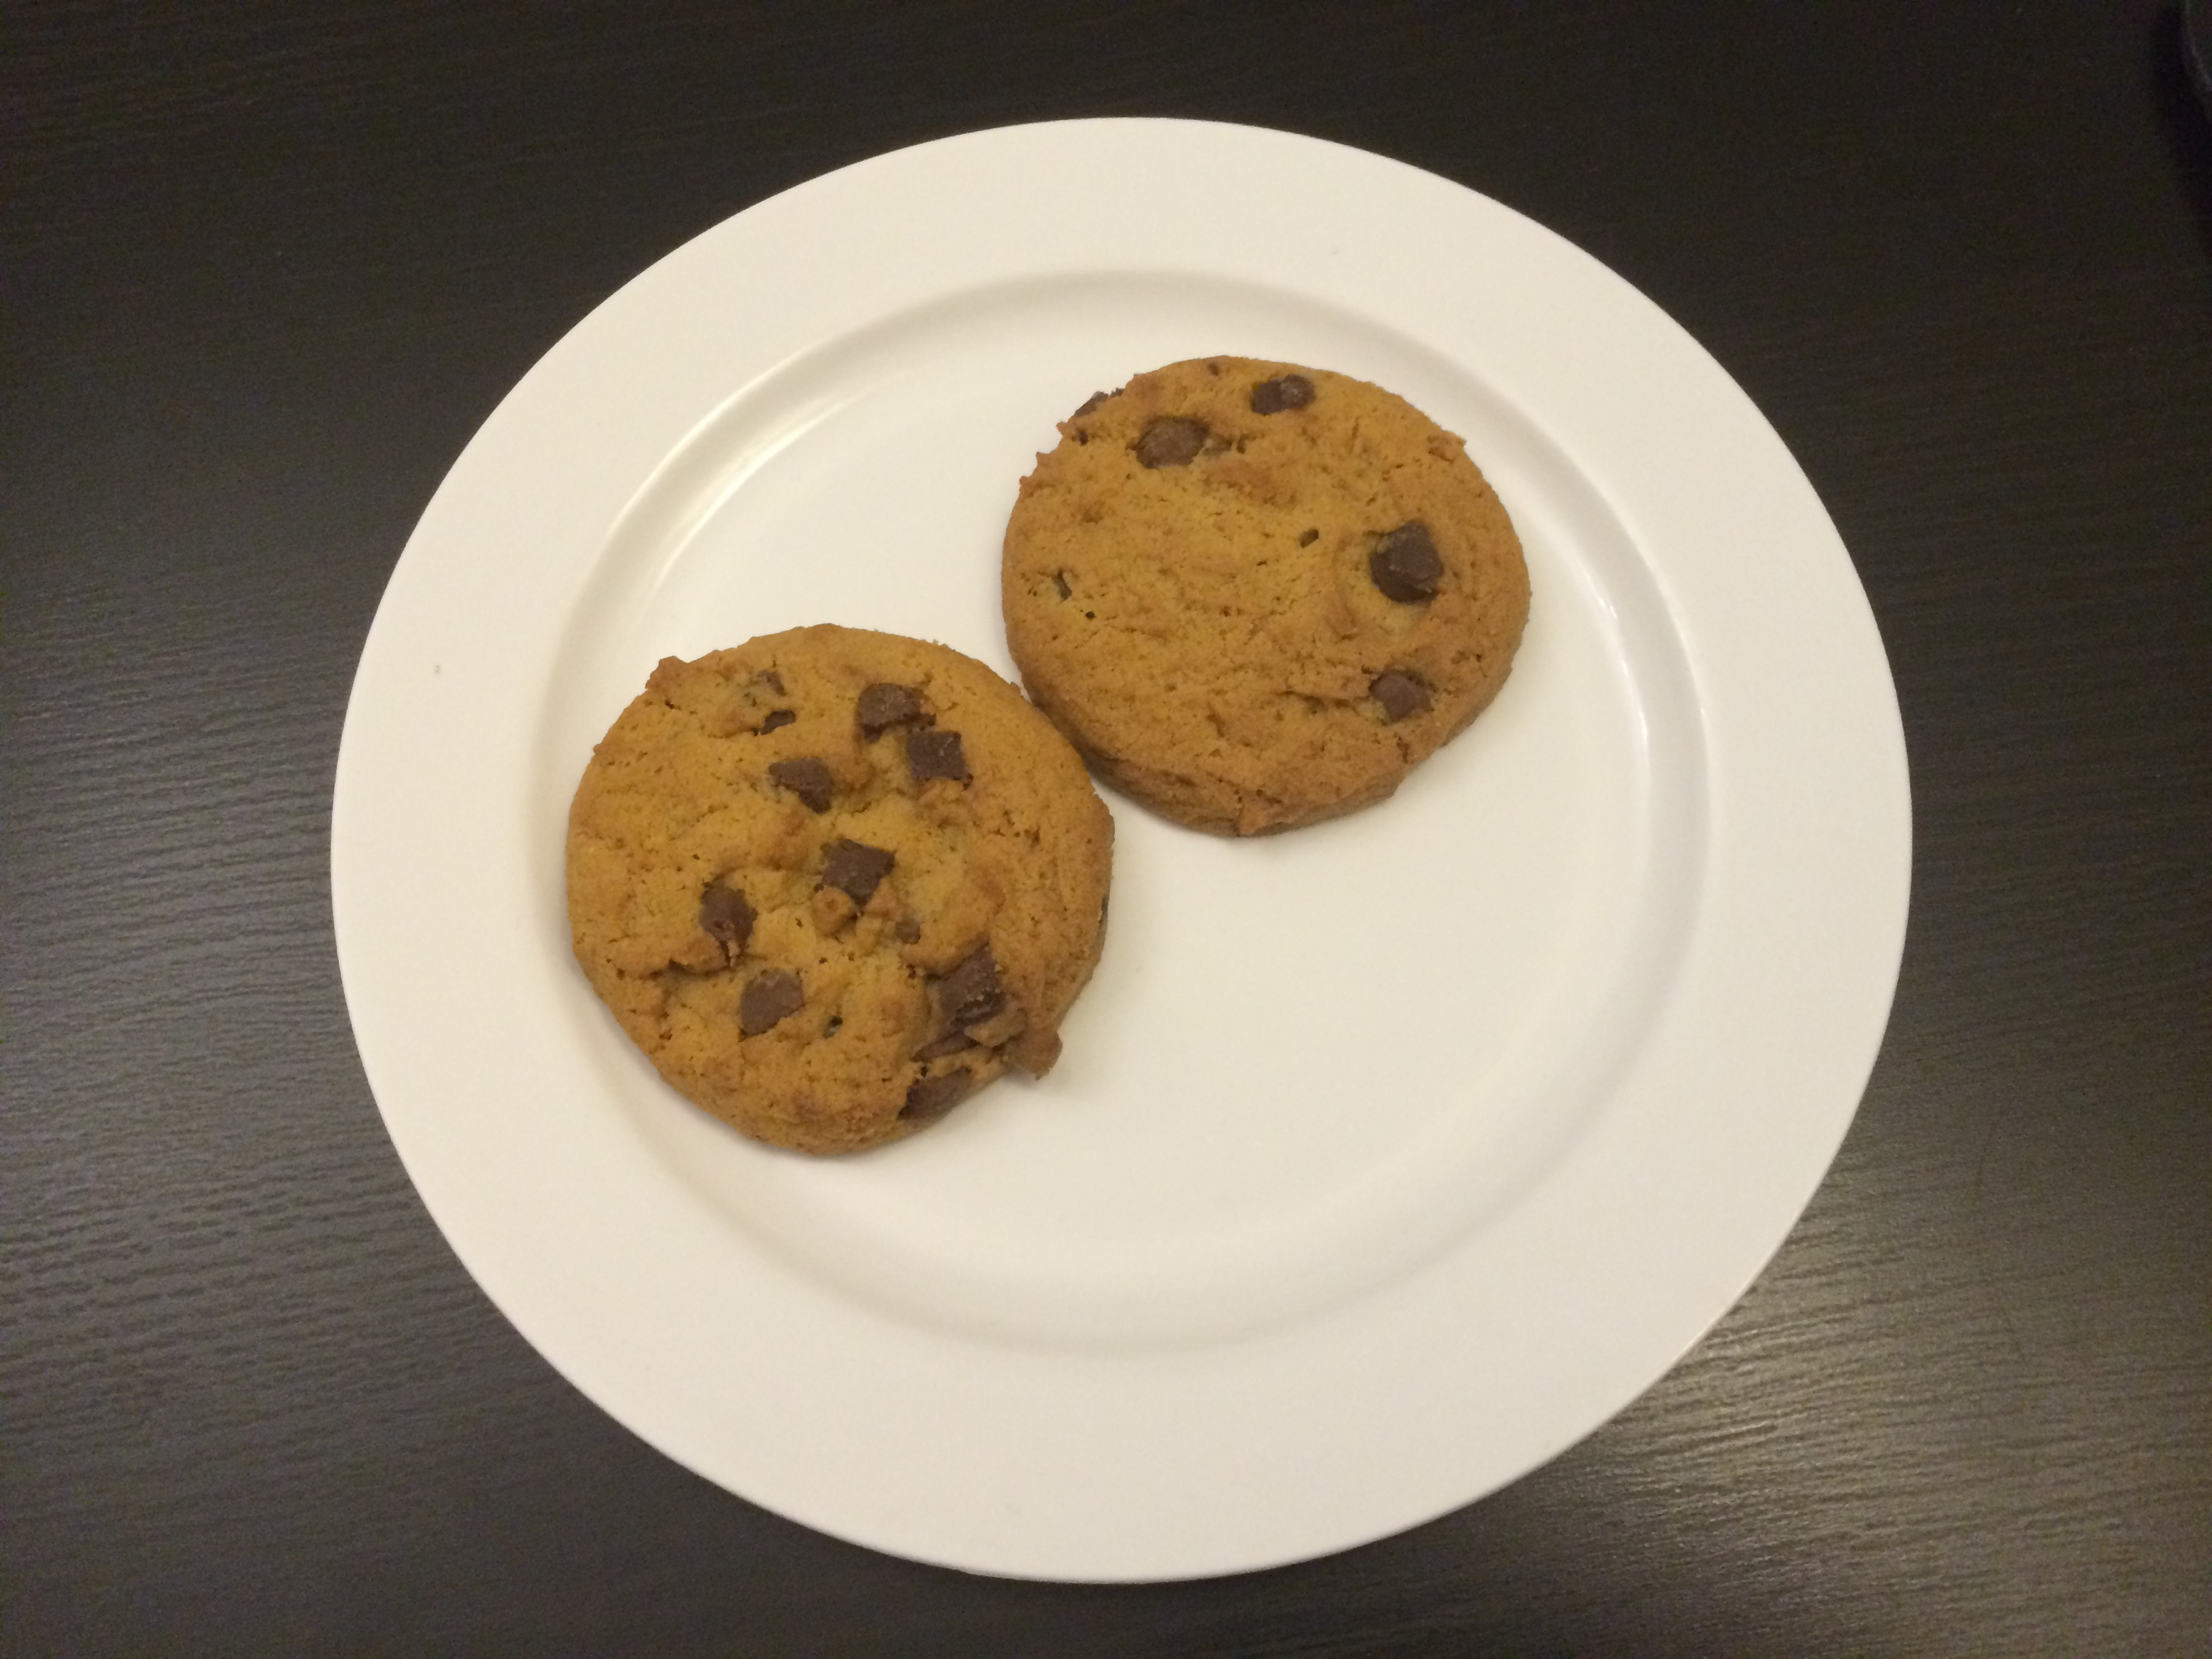 Chocolate chunk cookies - yum!